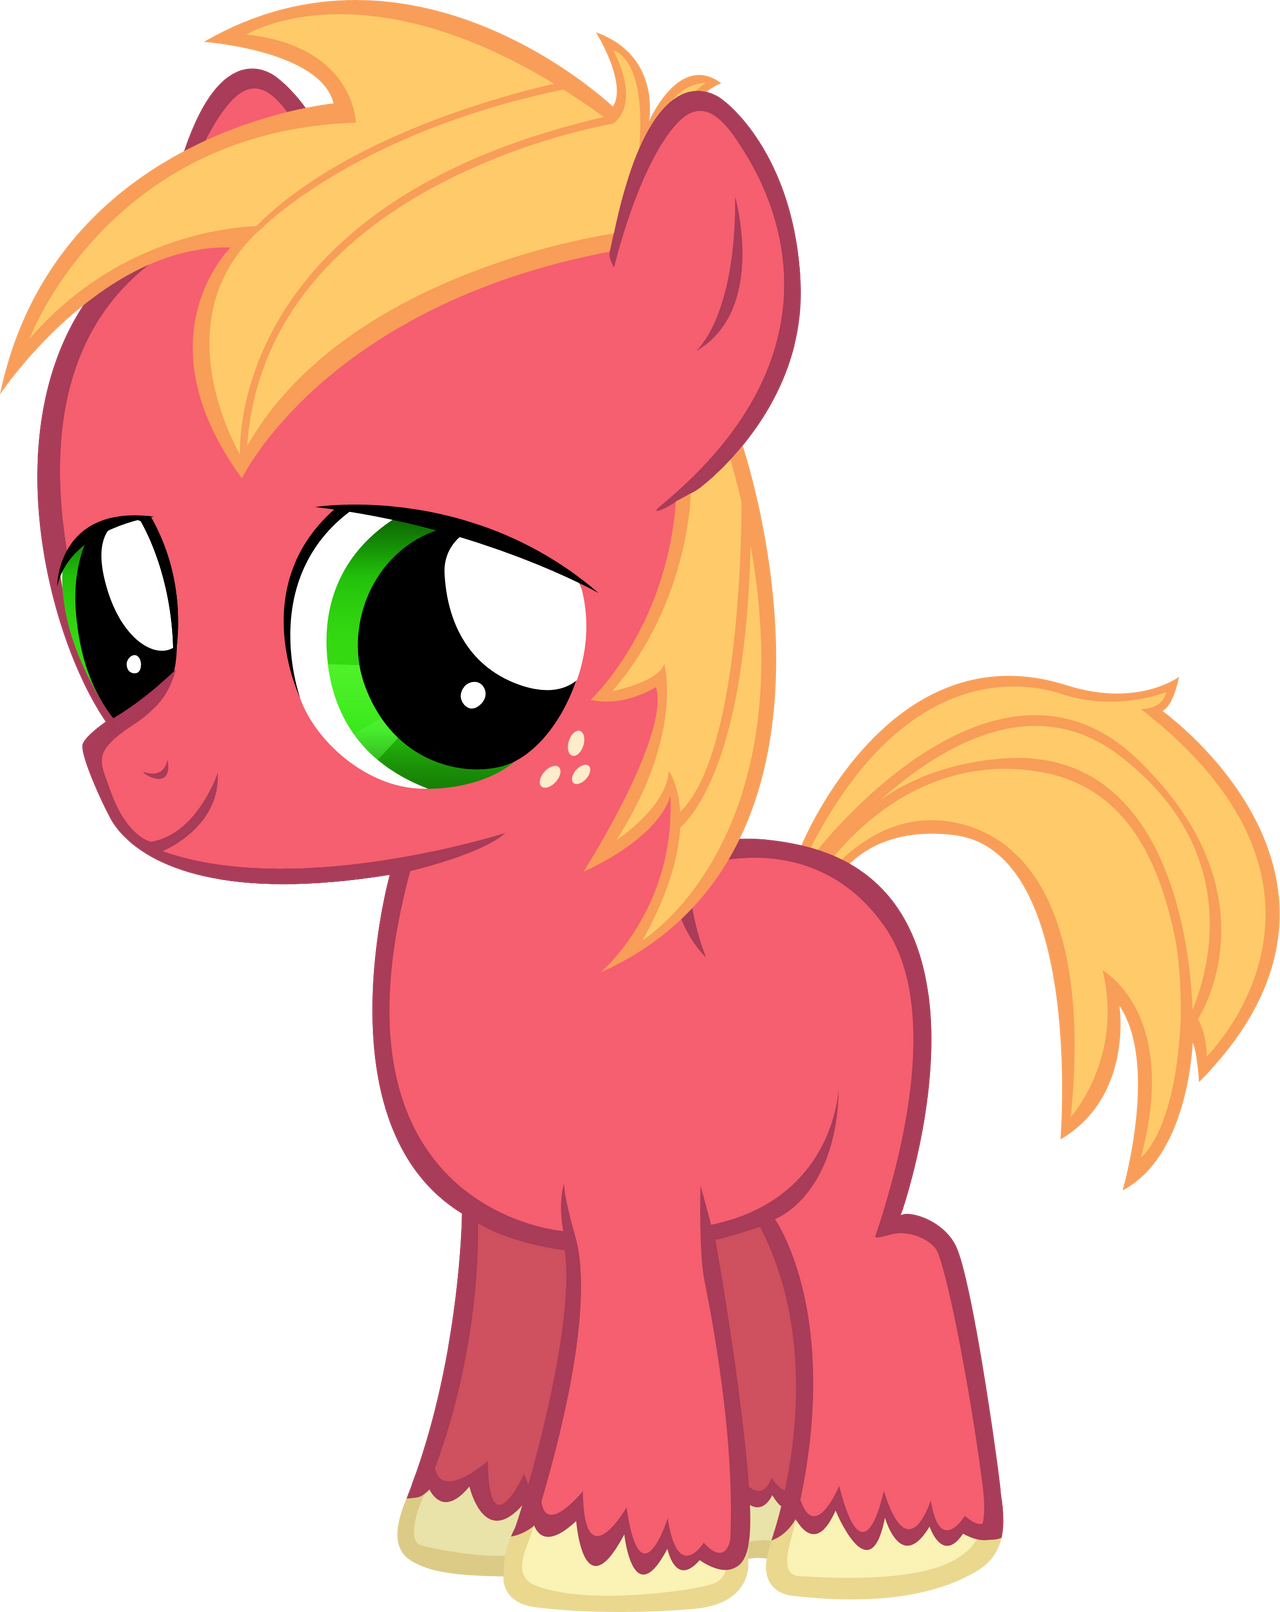 Little Macintosh Colt by MoongazePonies